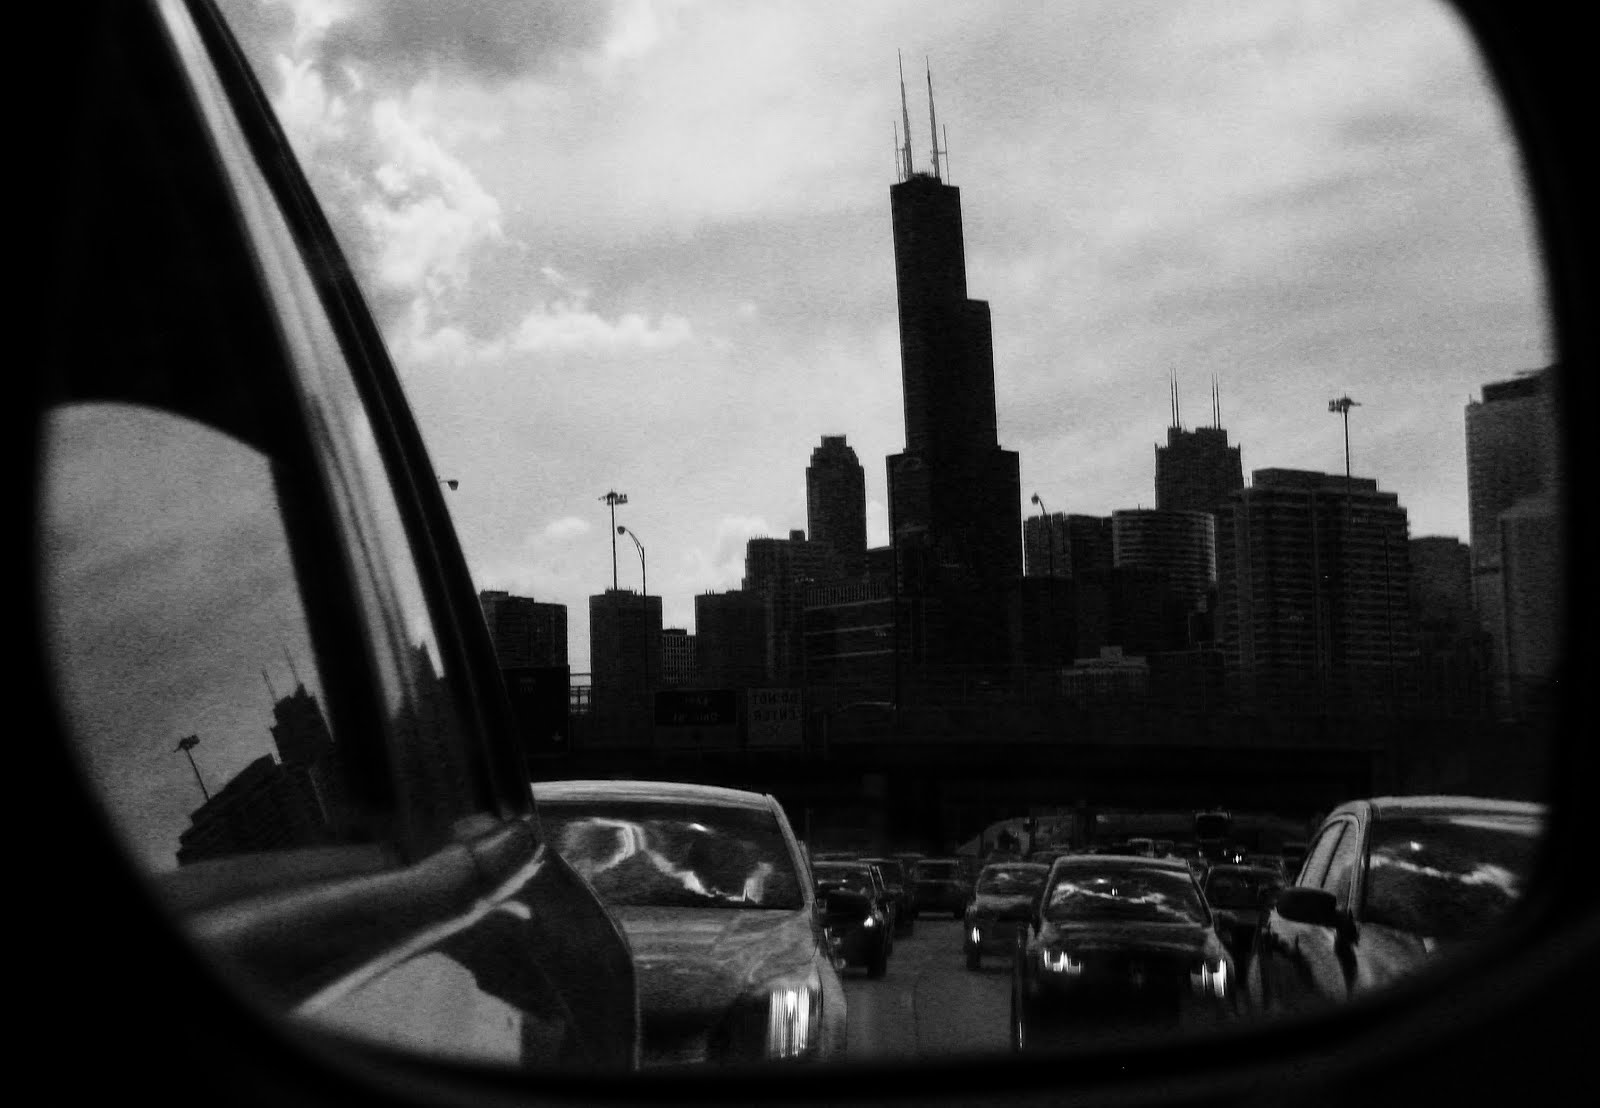 drive by shooting - dark windy city